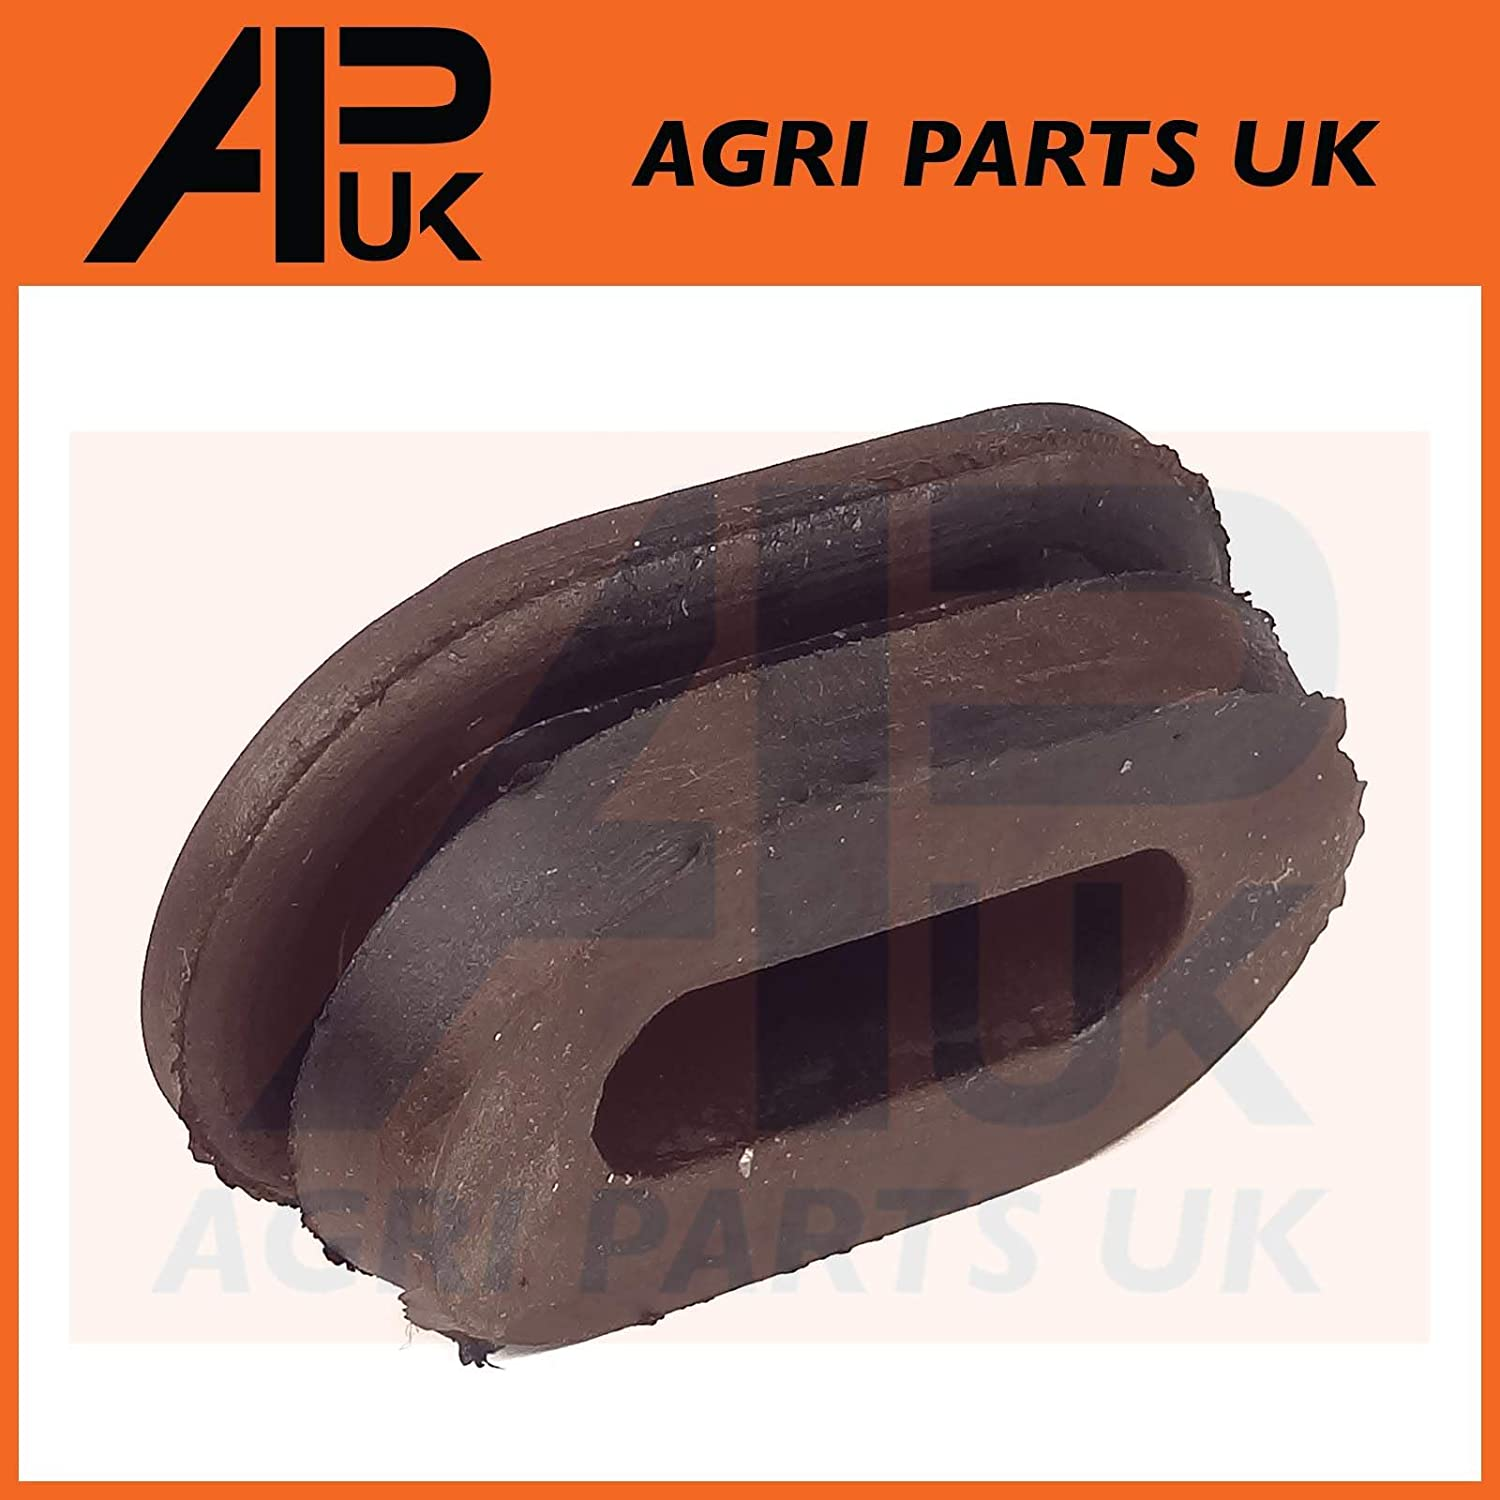 APUK Engine Flywheel Ring Gear Blanking Plug Rubber compatible with Massey Ferguson 135-550 Tractor